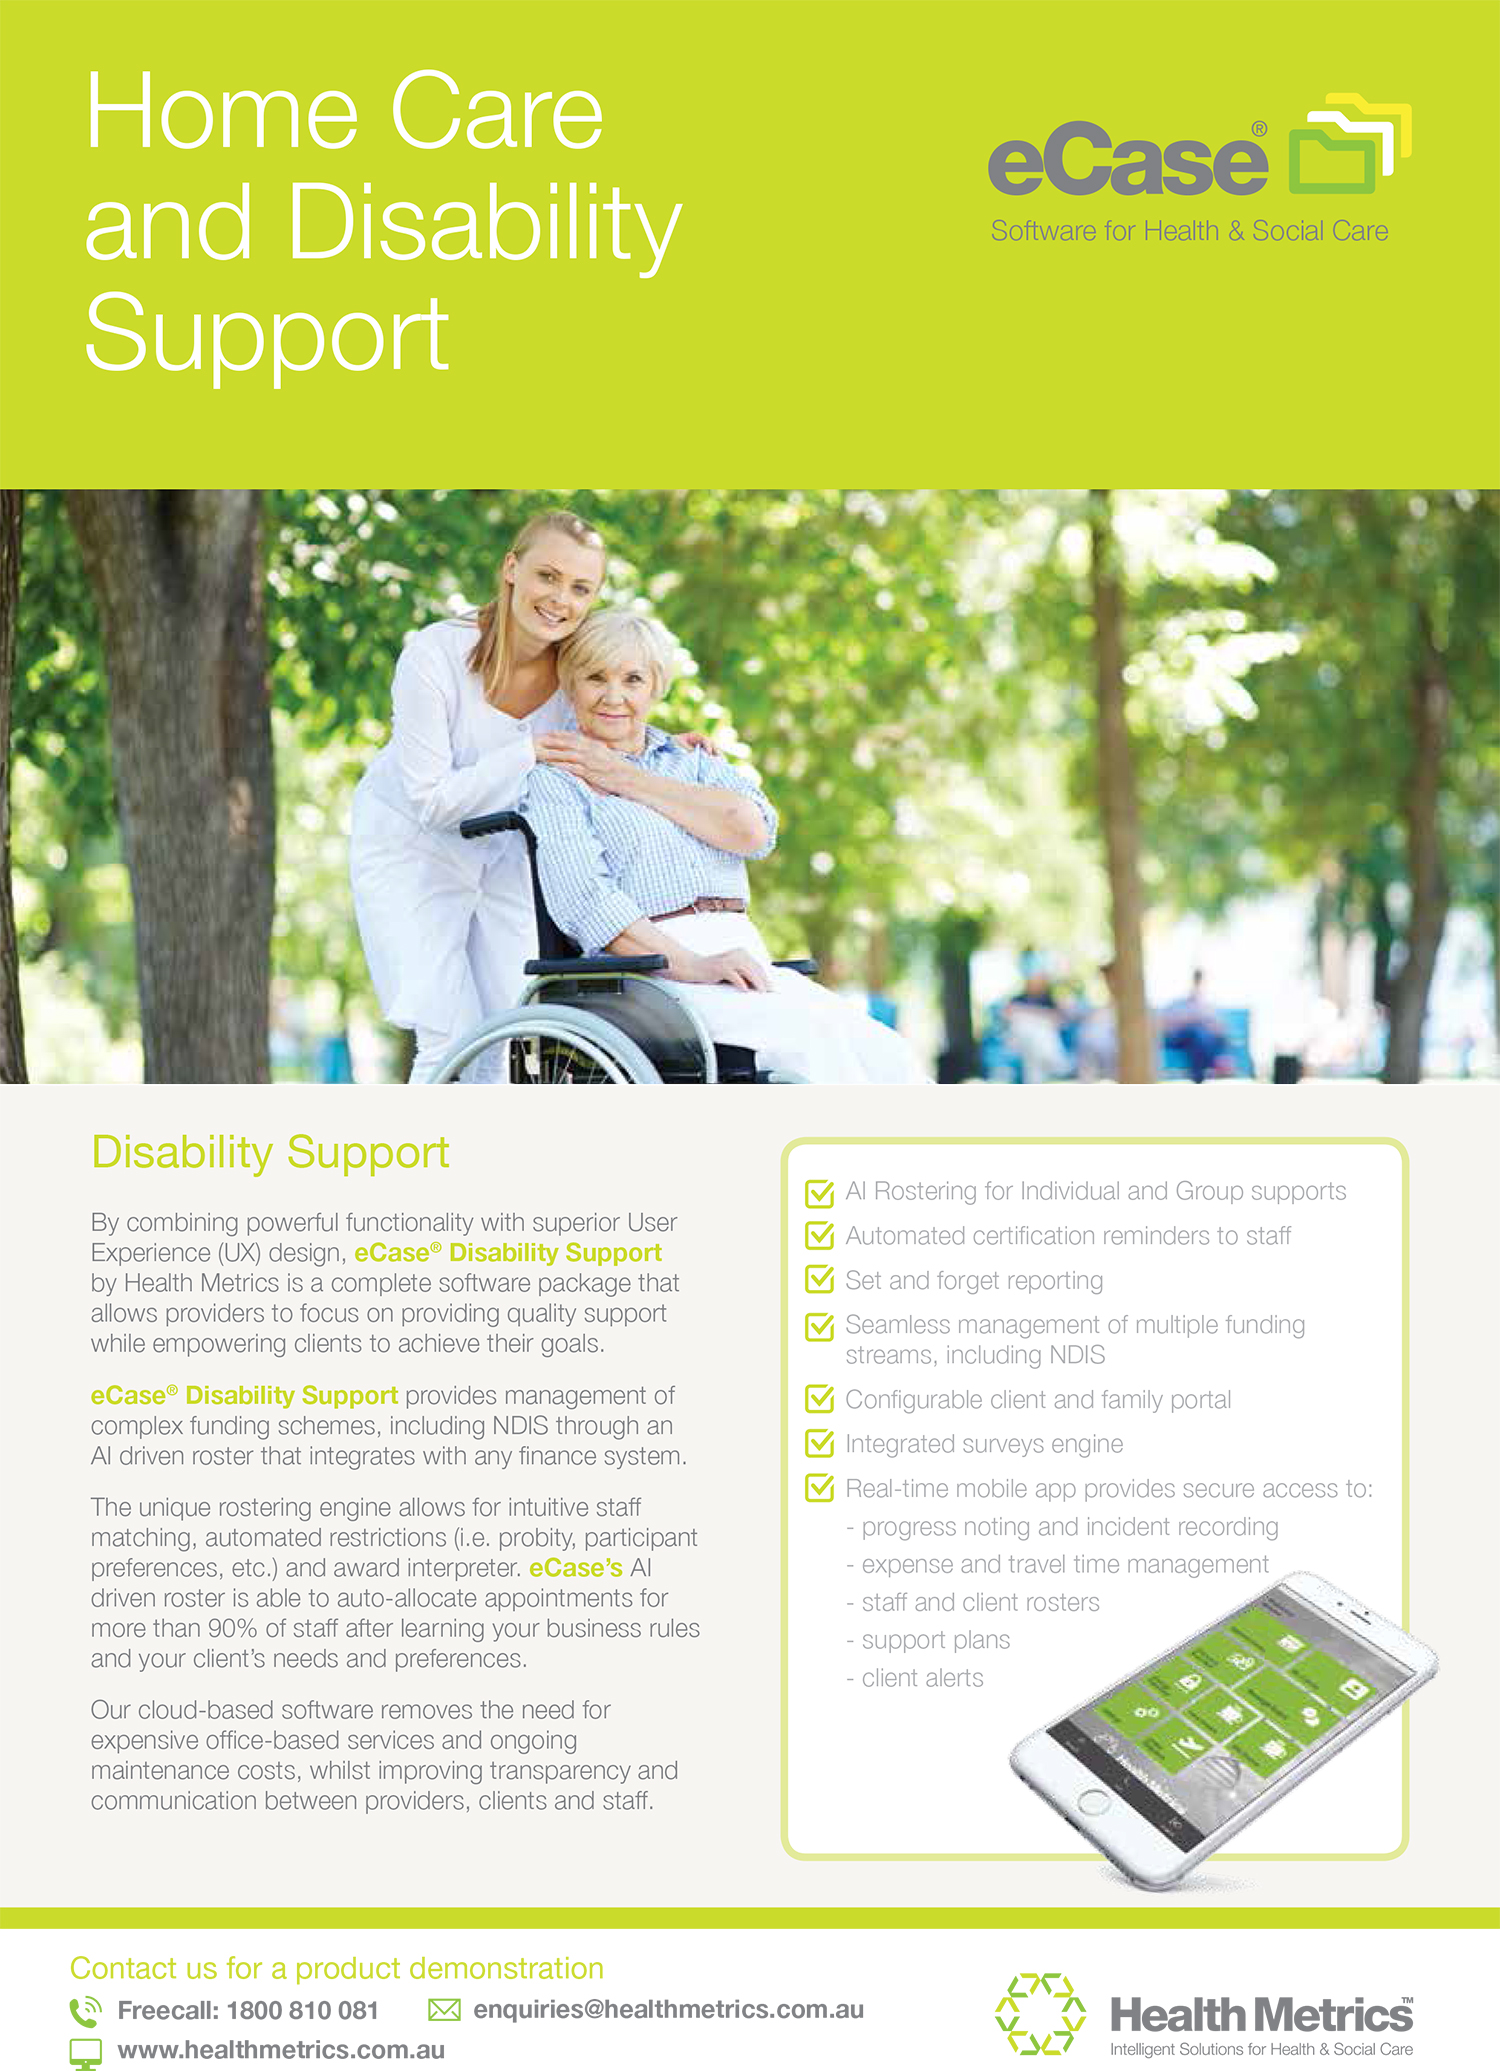 eCase Homecare and Disability flyer_AUS